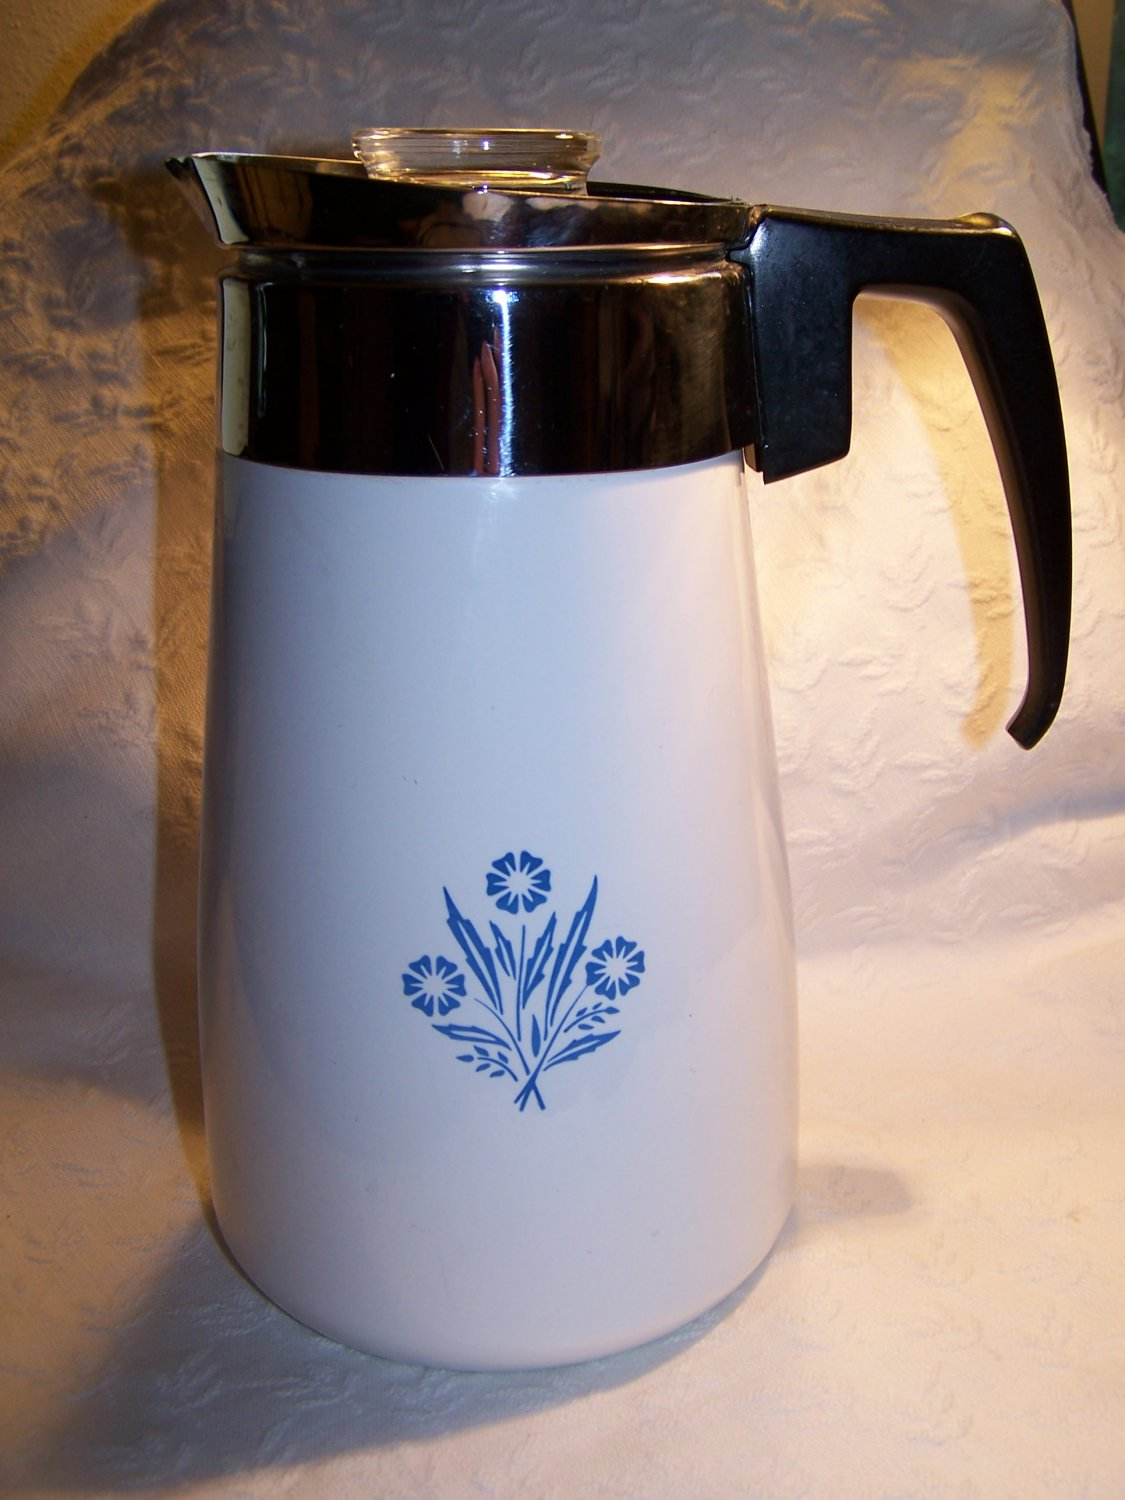 Corning Ware 10 Cup Percolator Cornflower Blue Stovetop Coffee Pot Corningware